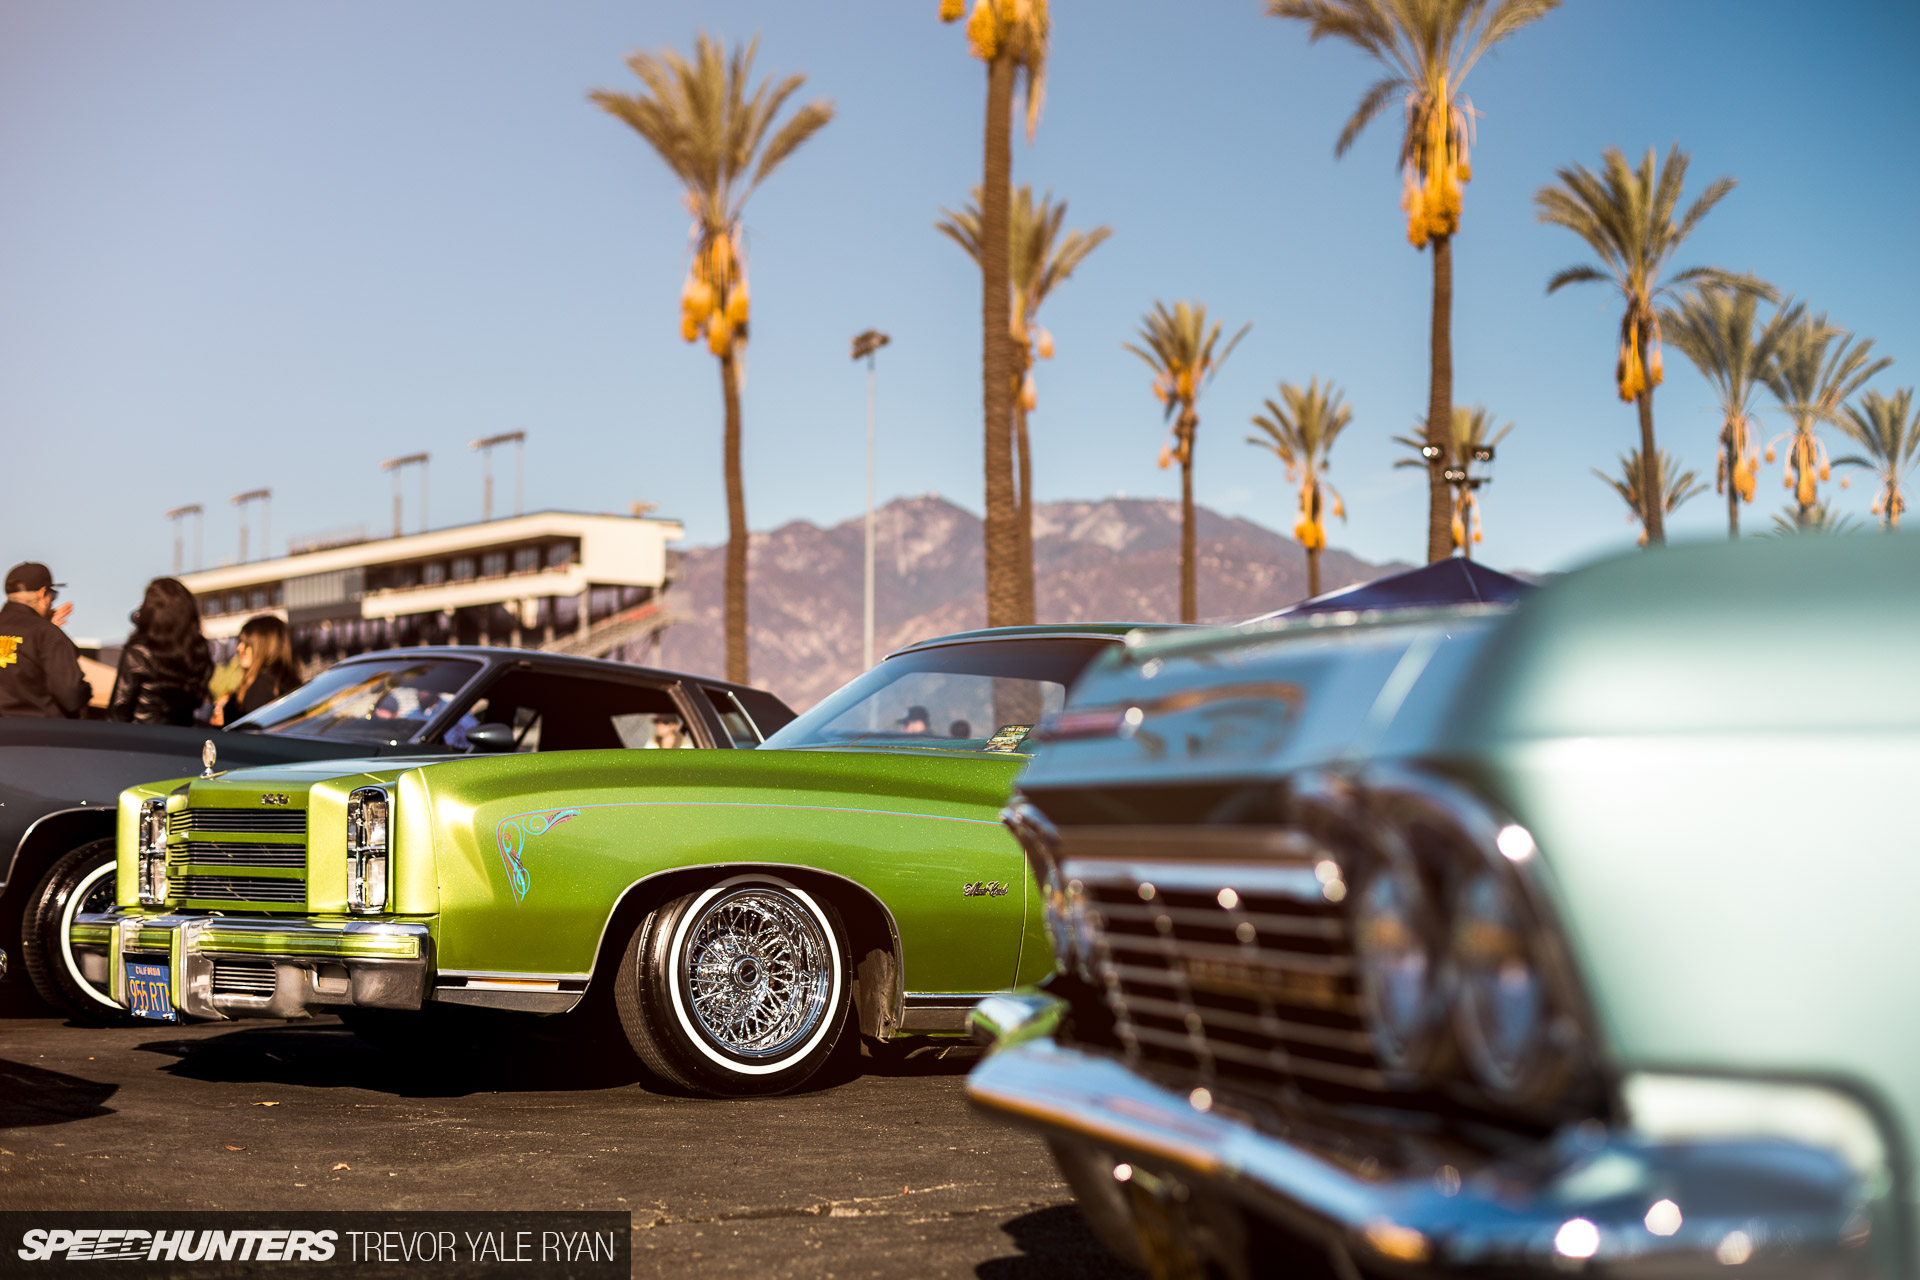 Carhoots | The Hottest, Most Social, Viral Car Content On The Web